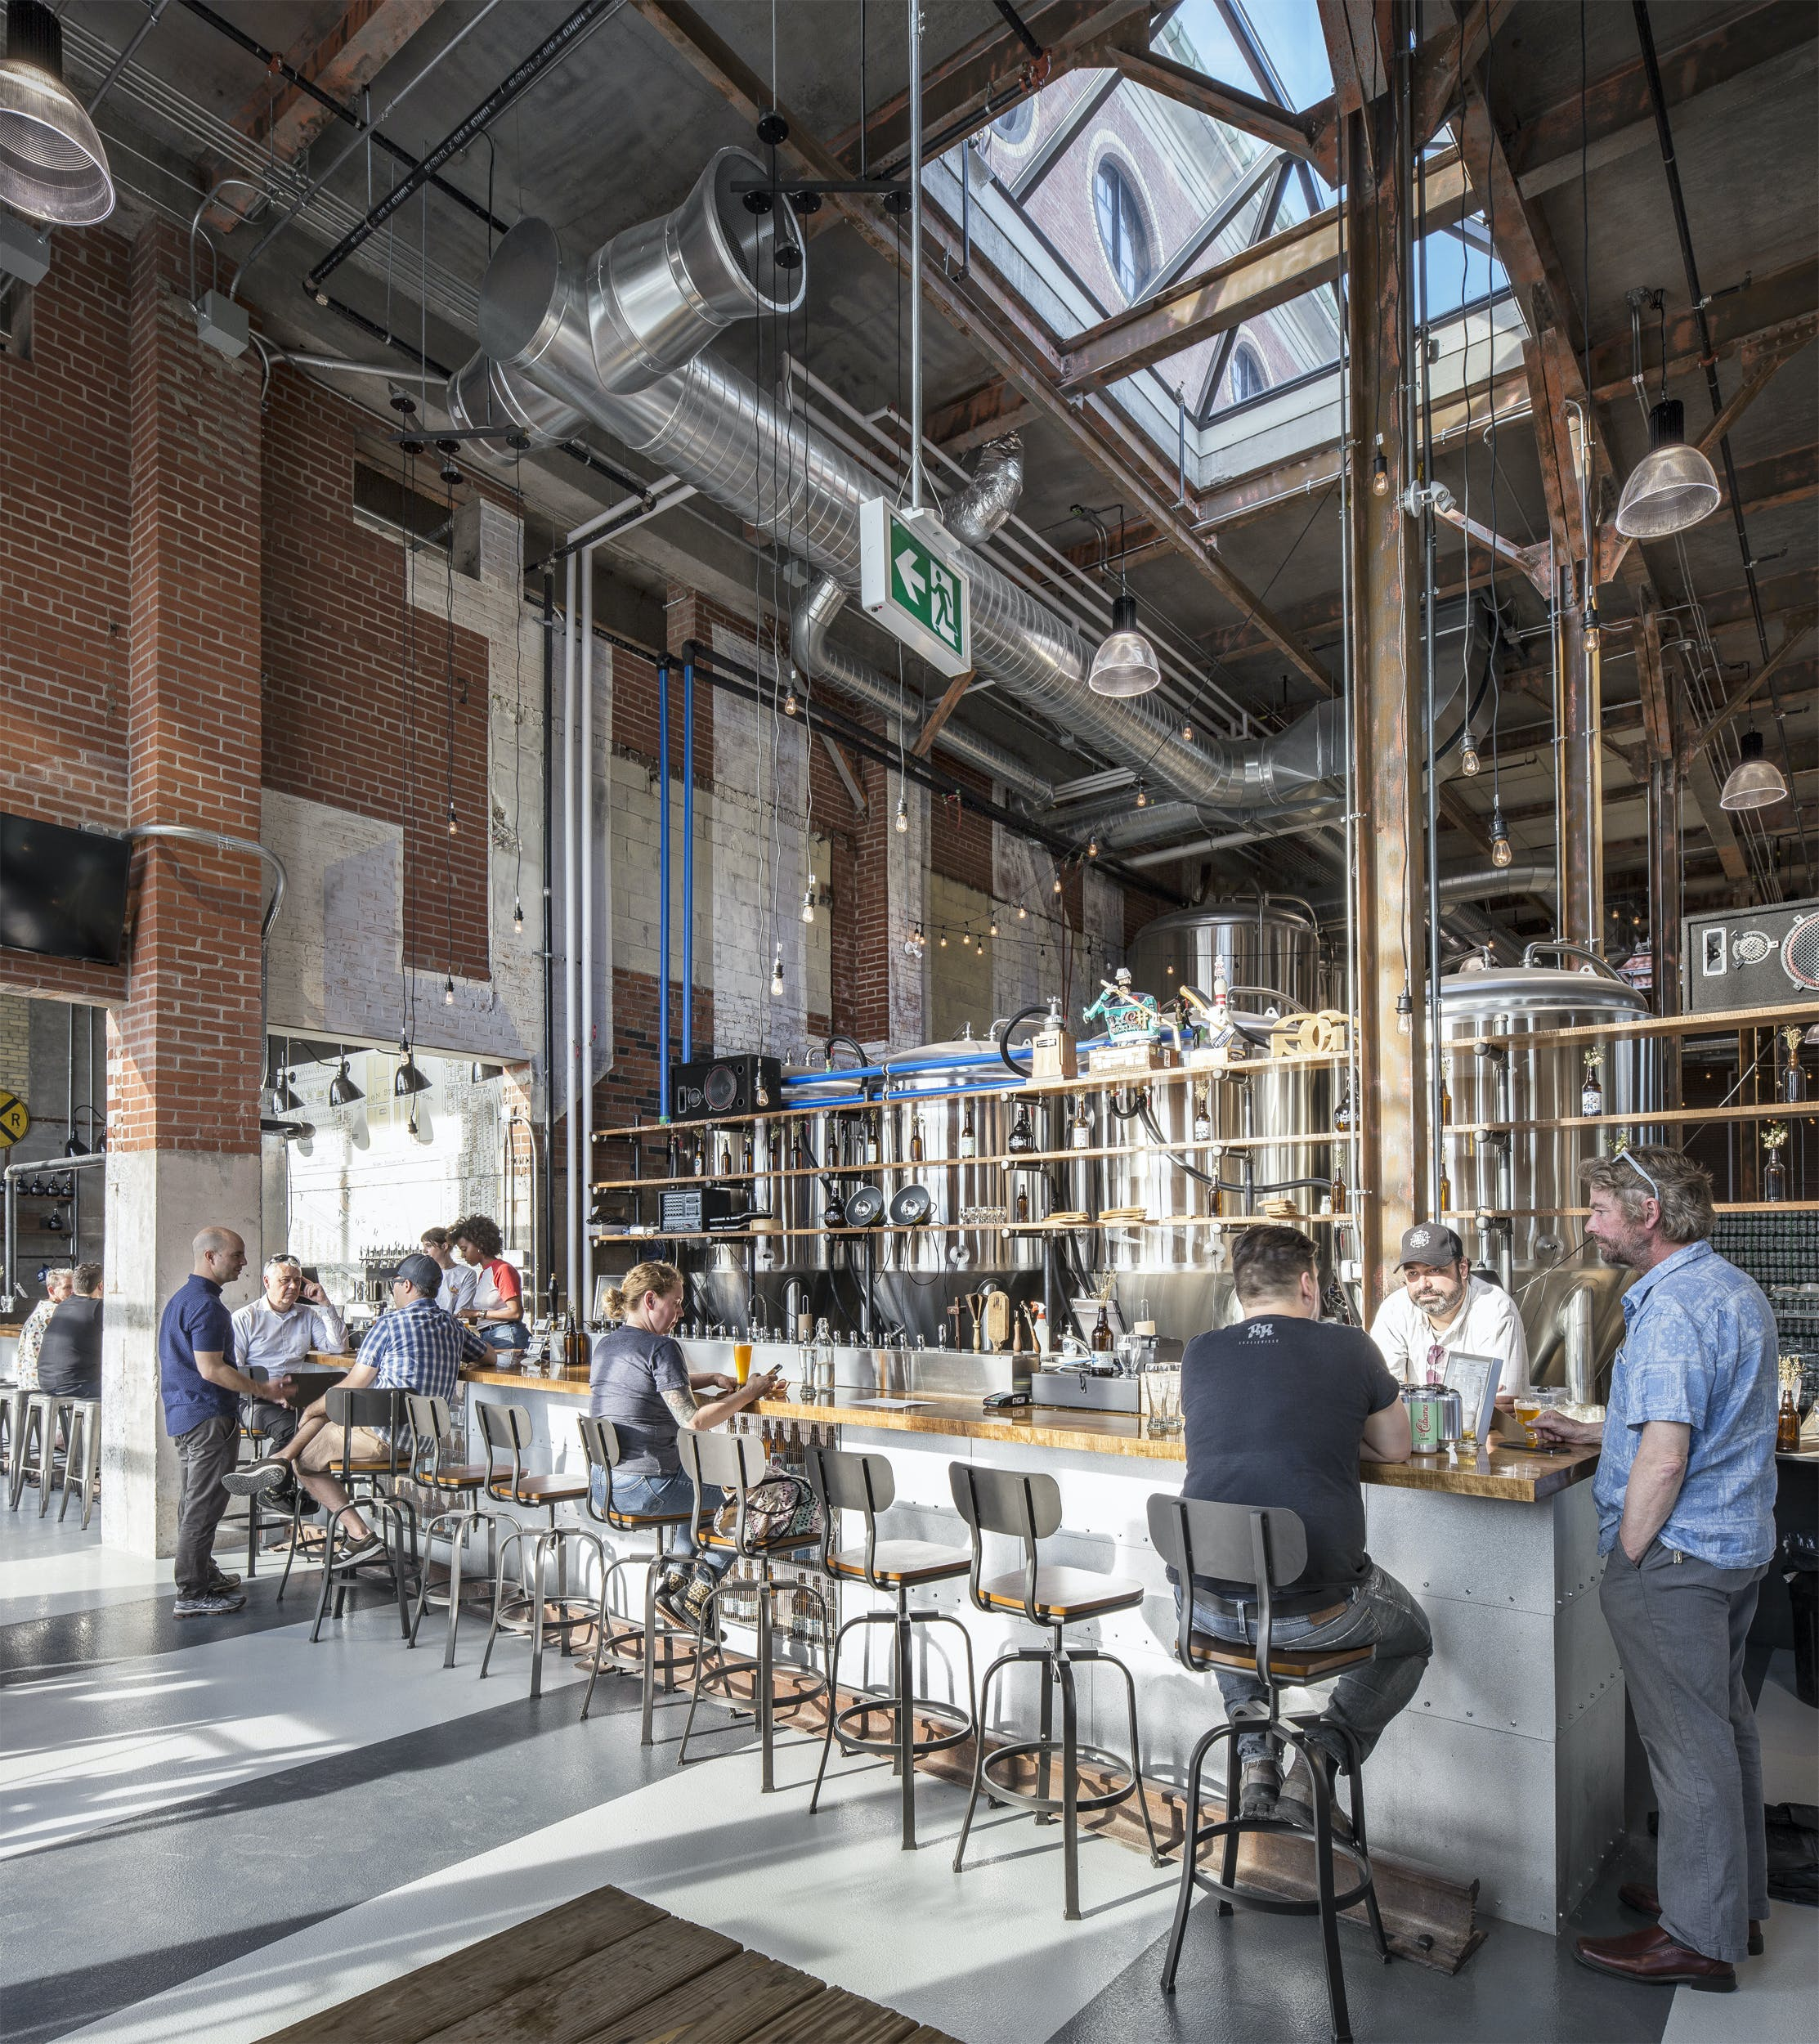 Junction Craft Brewing wins Architectural Conservancy